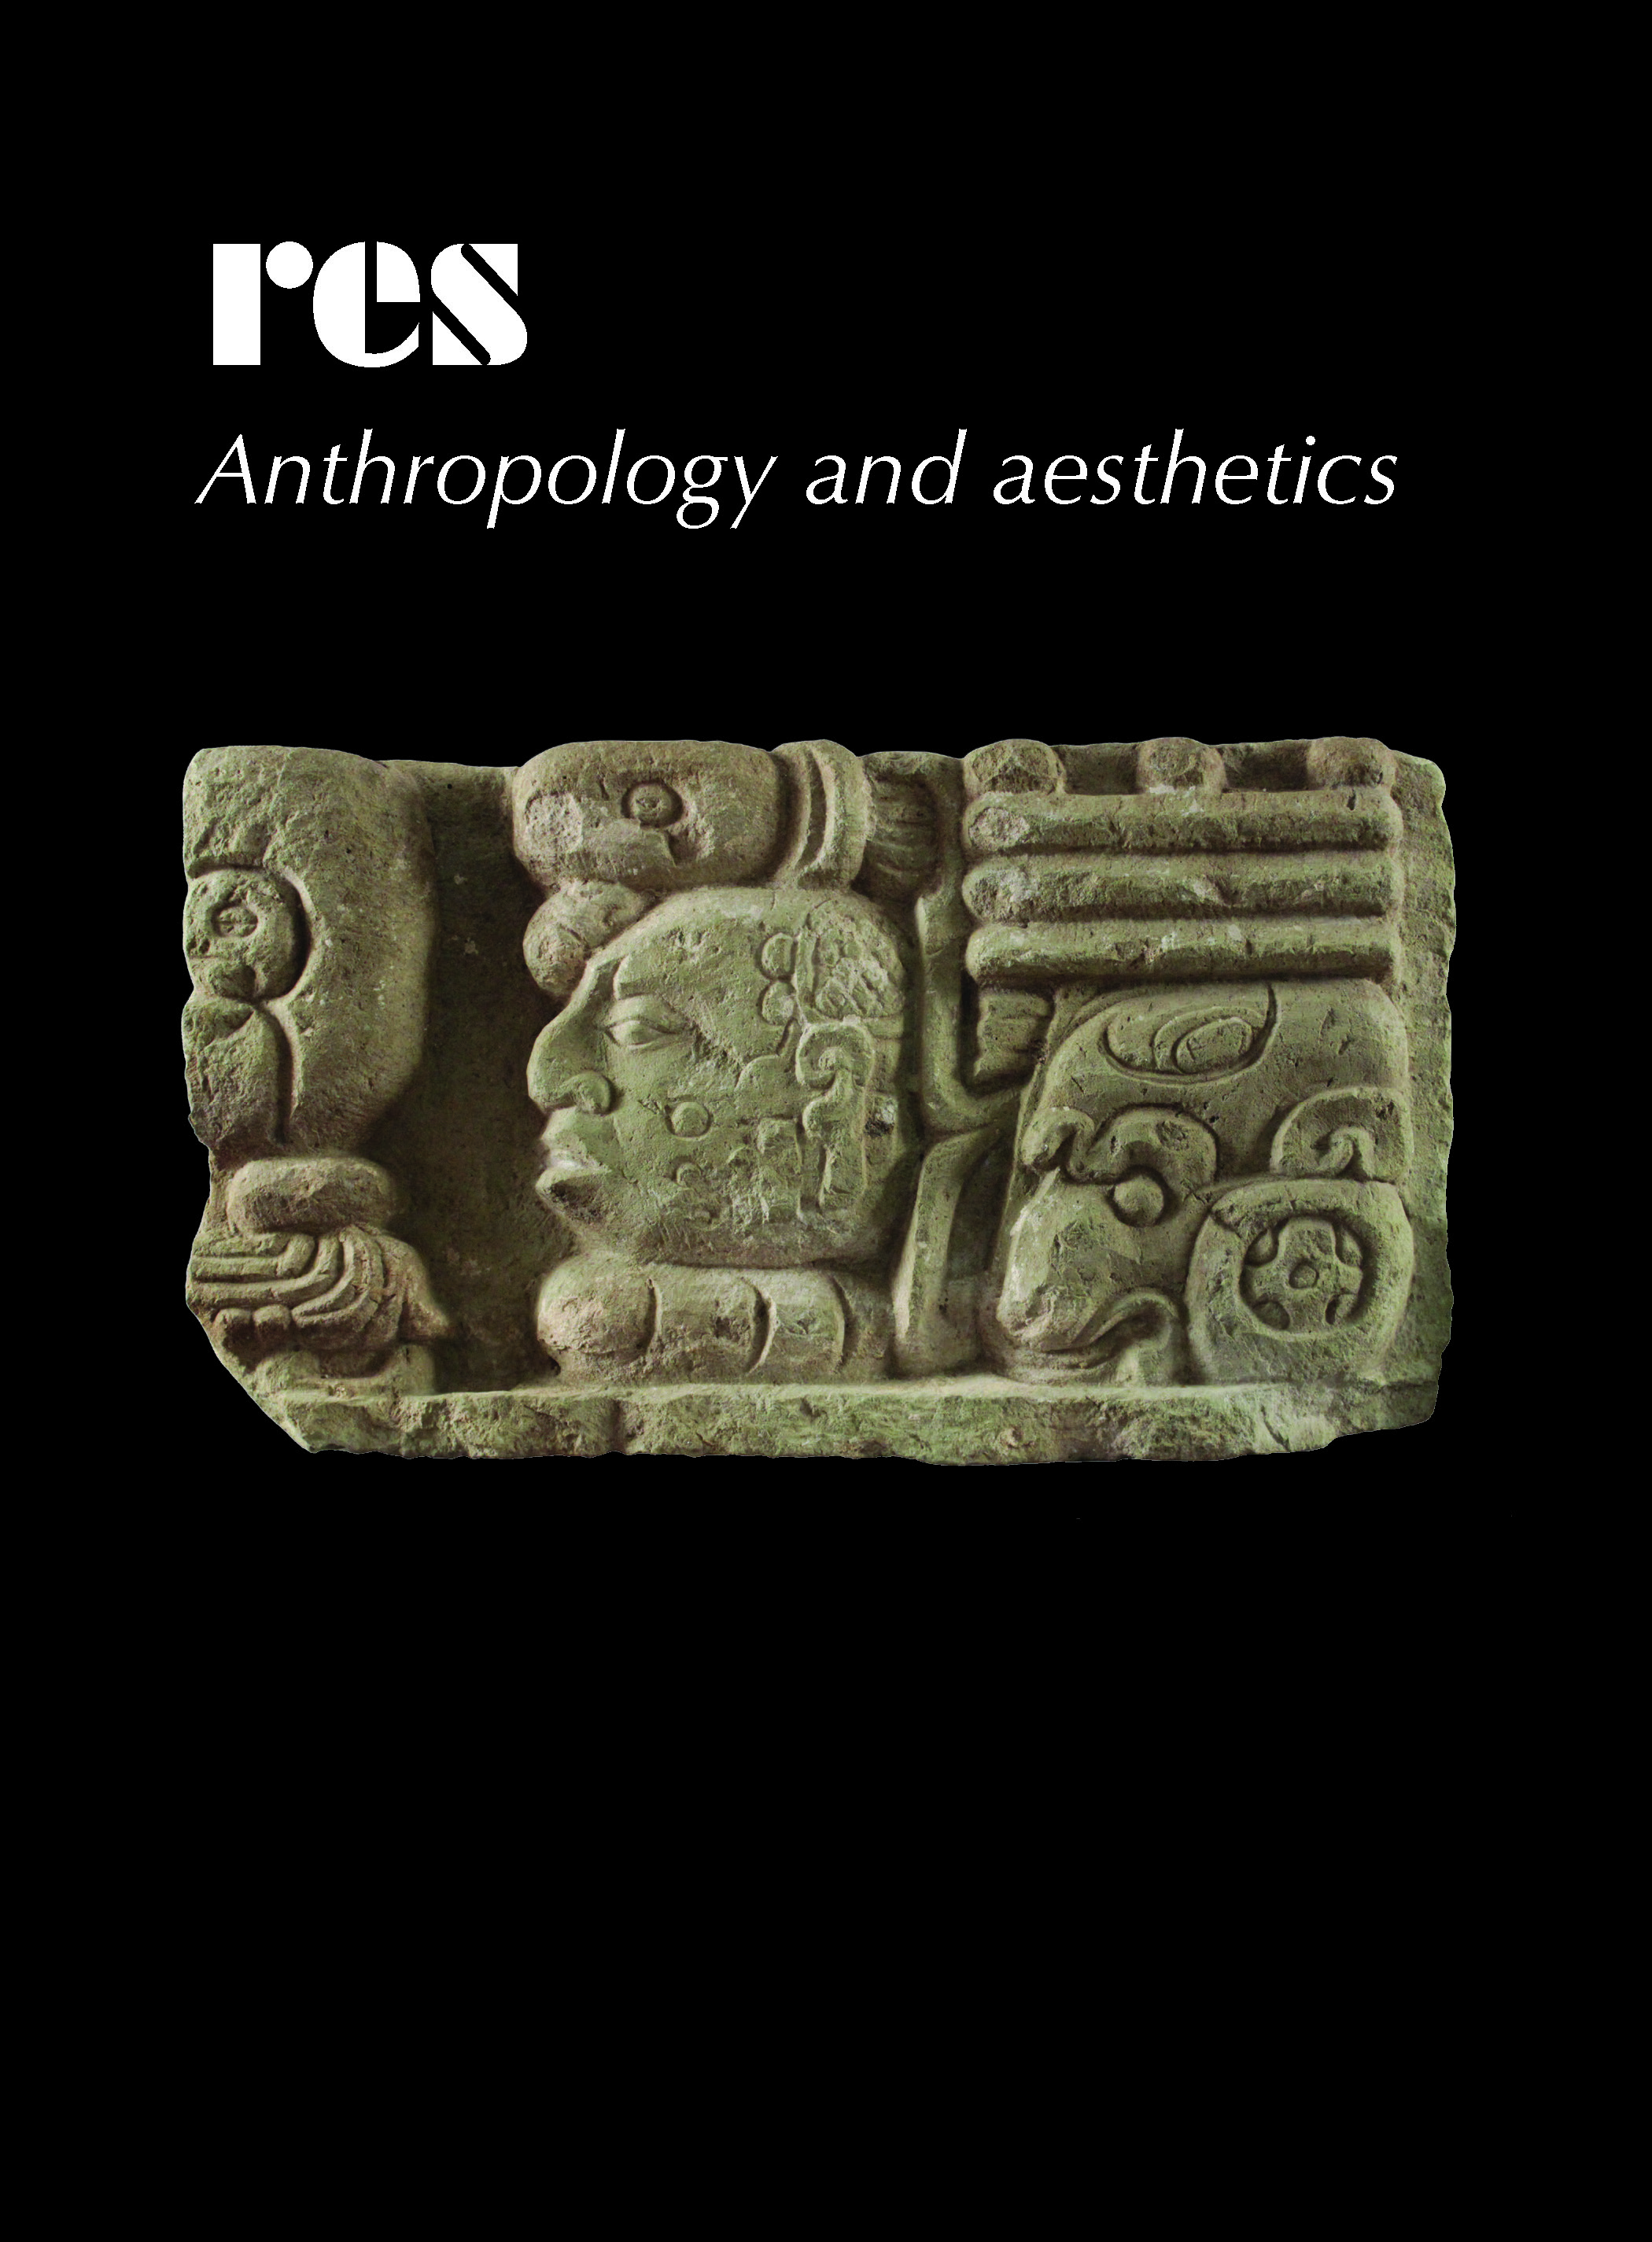 Res: Anthropology and aesthetics